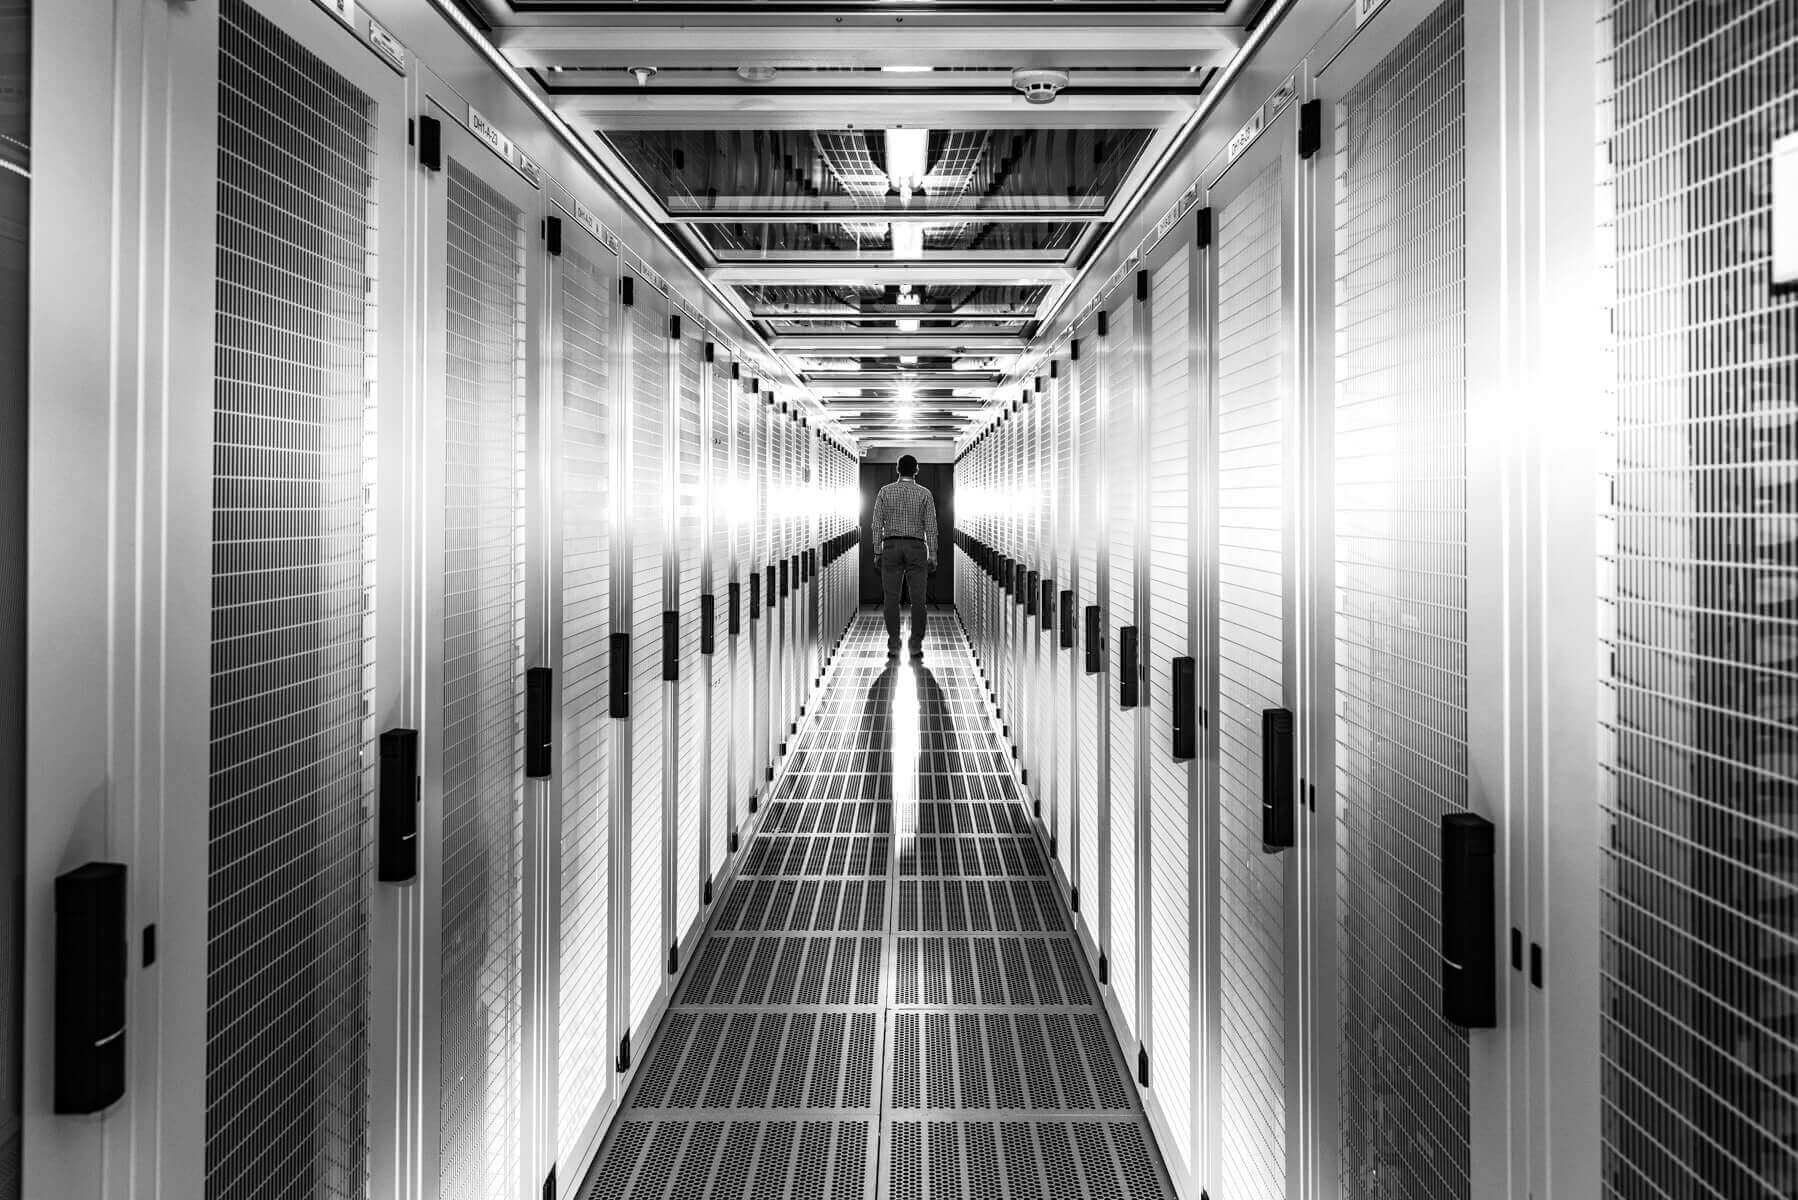 Macquarie Government has local secure cloud servers in Canberra for government colocation